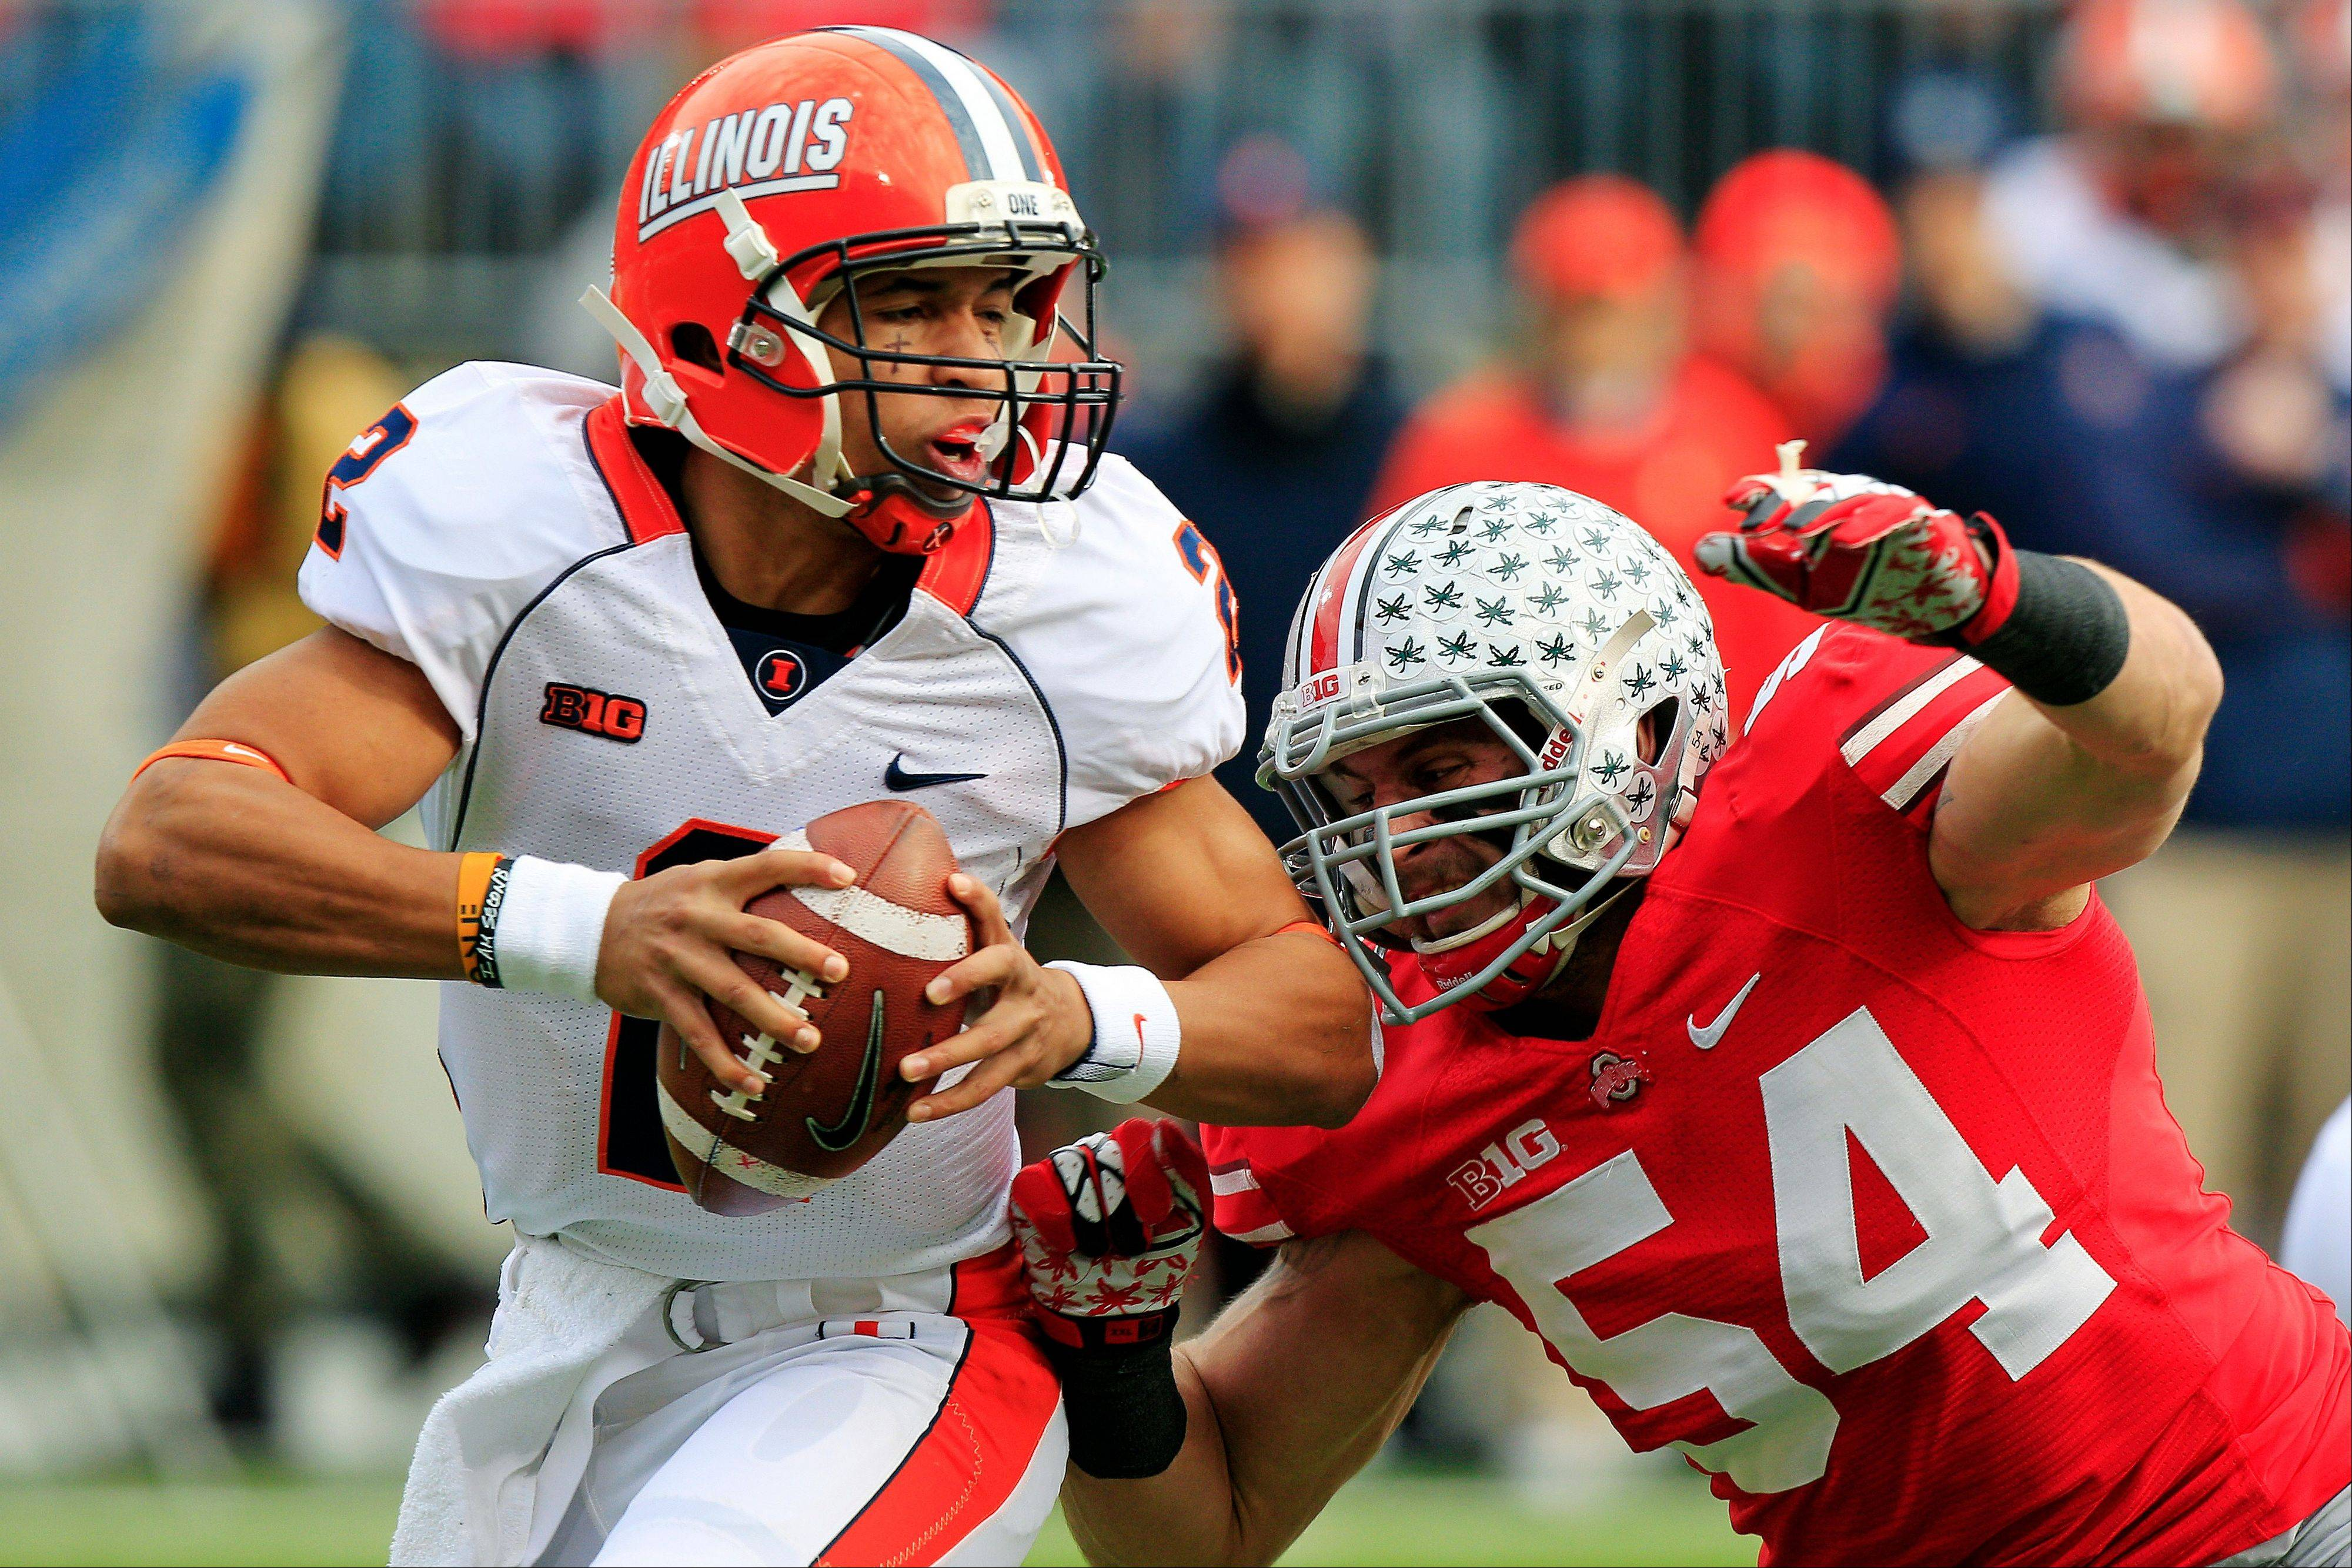 Illinois quarterback Nathan Scheelhaase, left, is sacked by Ohio State defensive lineman John Simon Saturday during the first quarter in Columbus, Ohio.